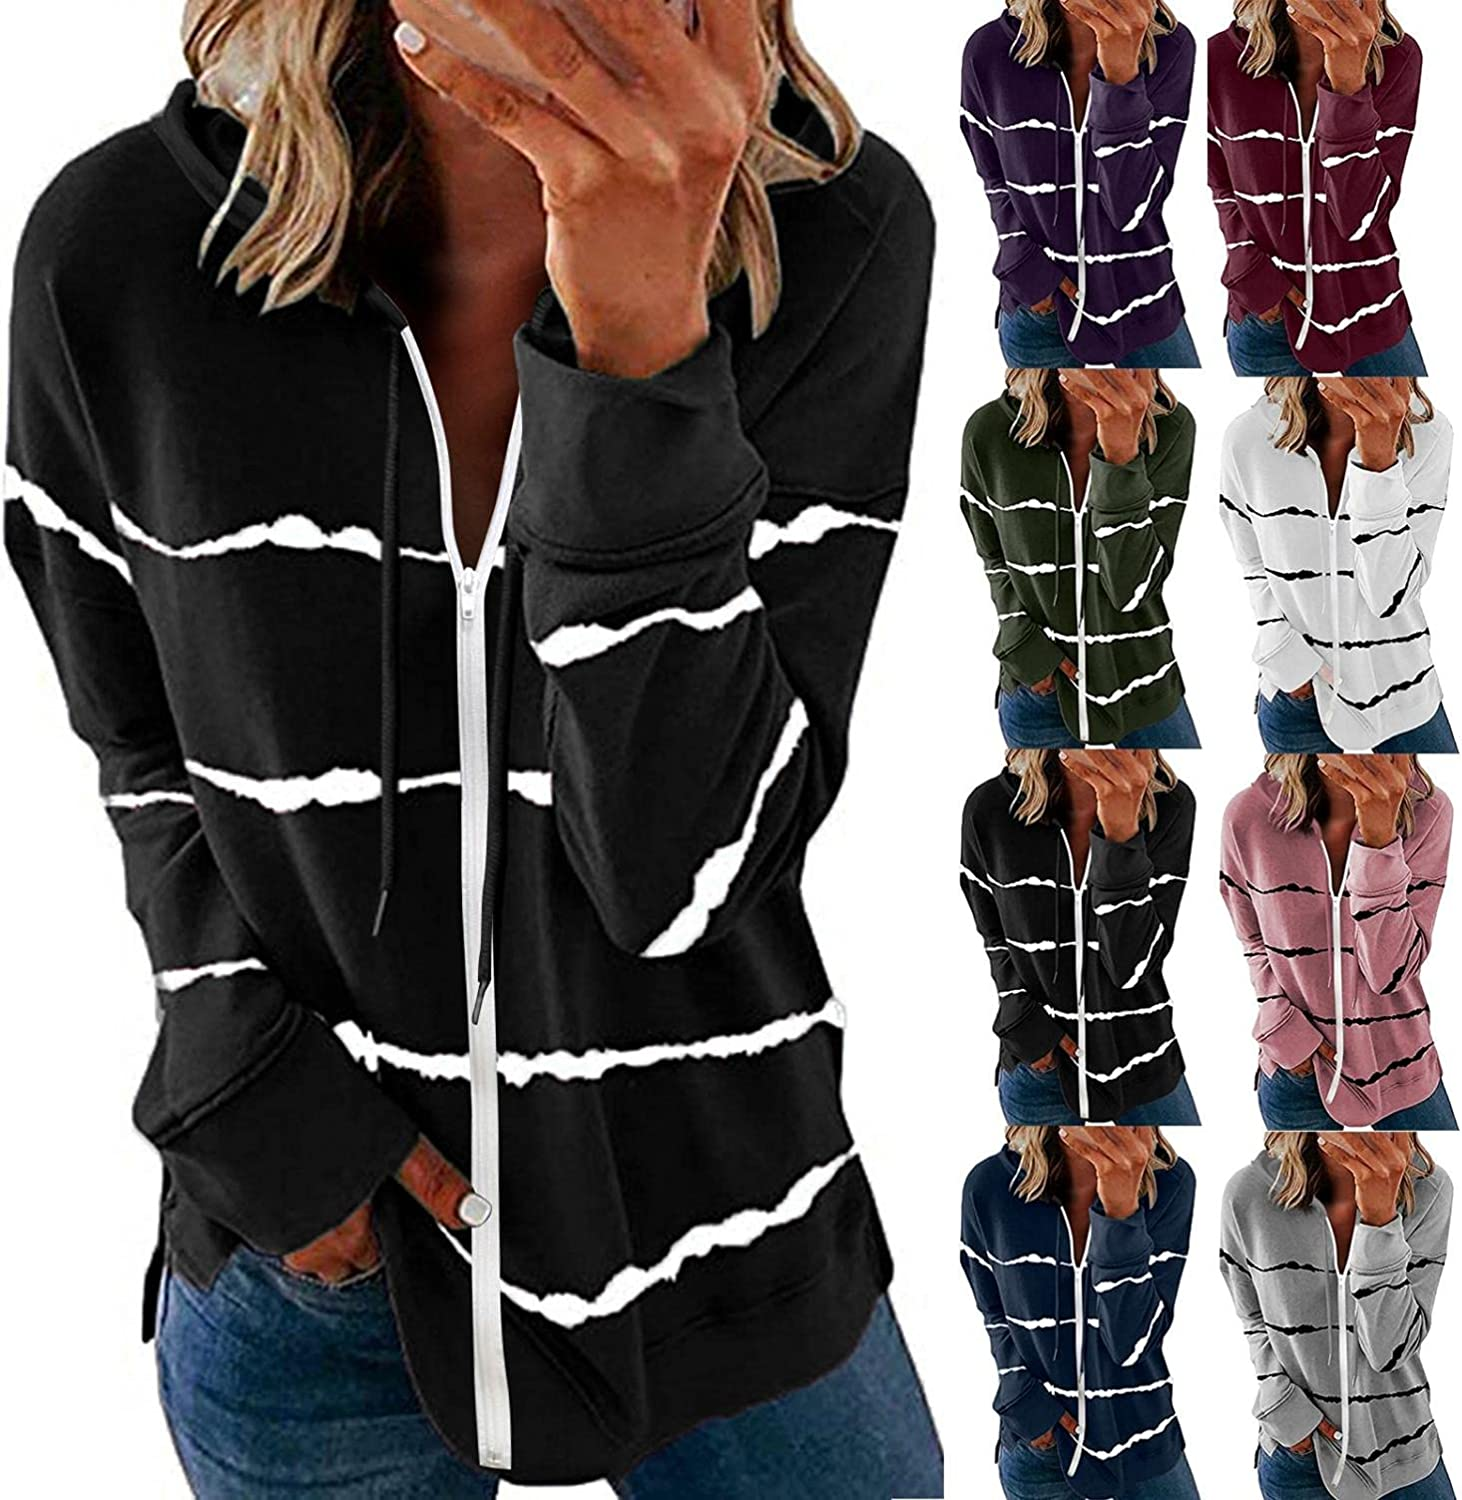 INNOVIERA Hoodies for Women,Women's Tops Printed Sweatshirt Long Sleeve Pullover Casual Loose Hooded Tunic Shirts